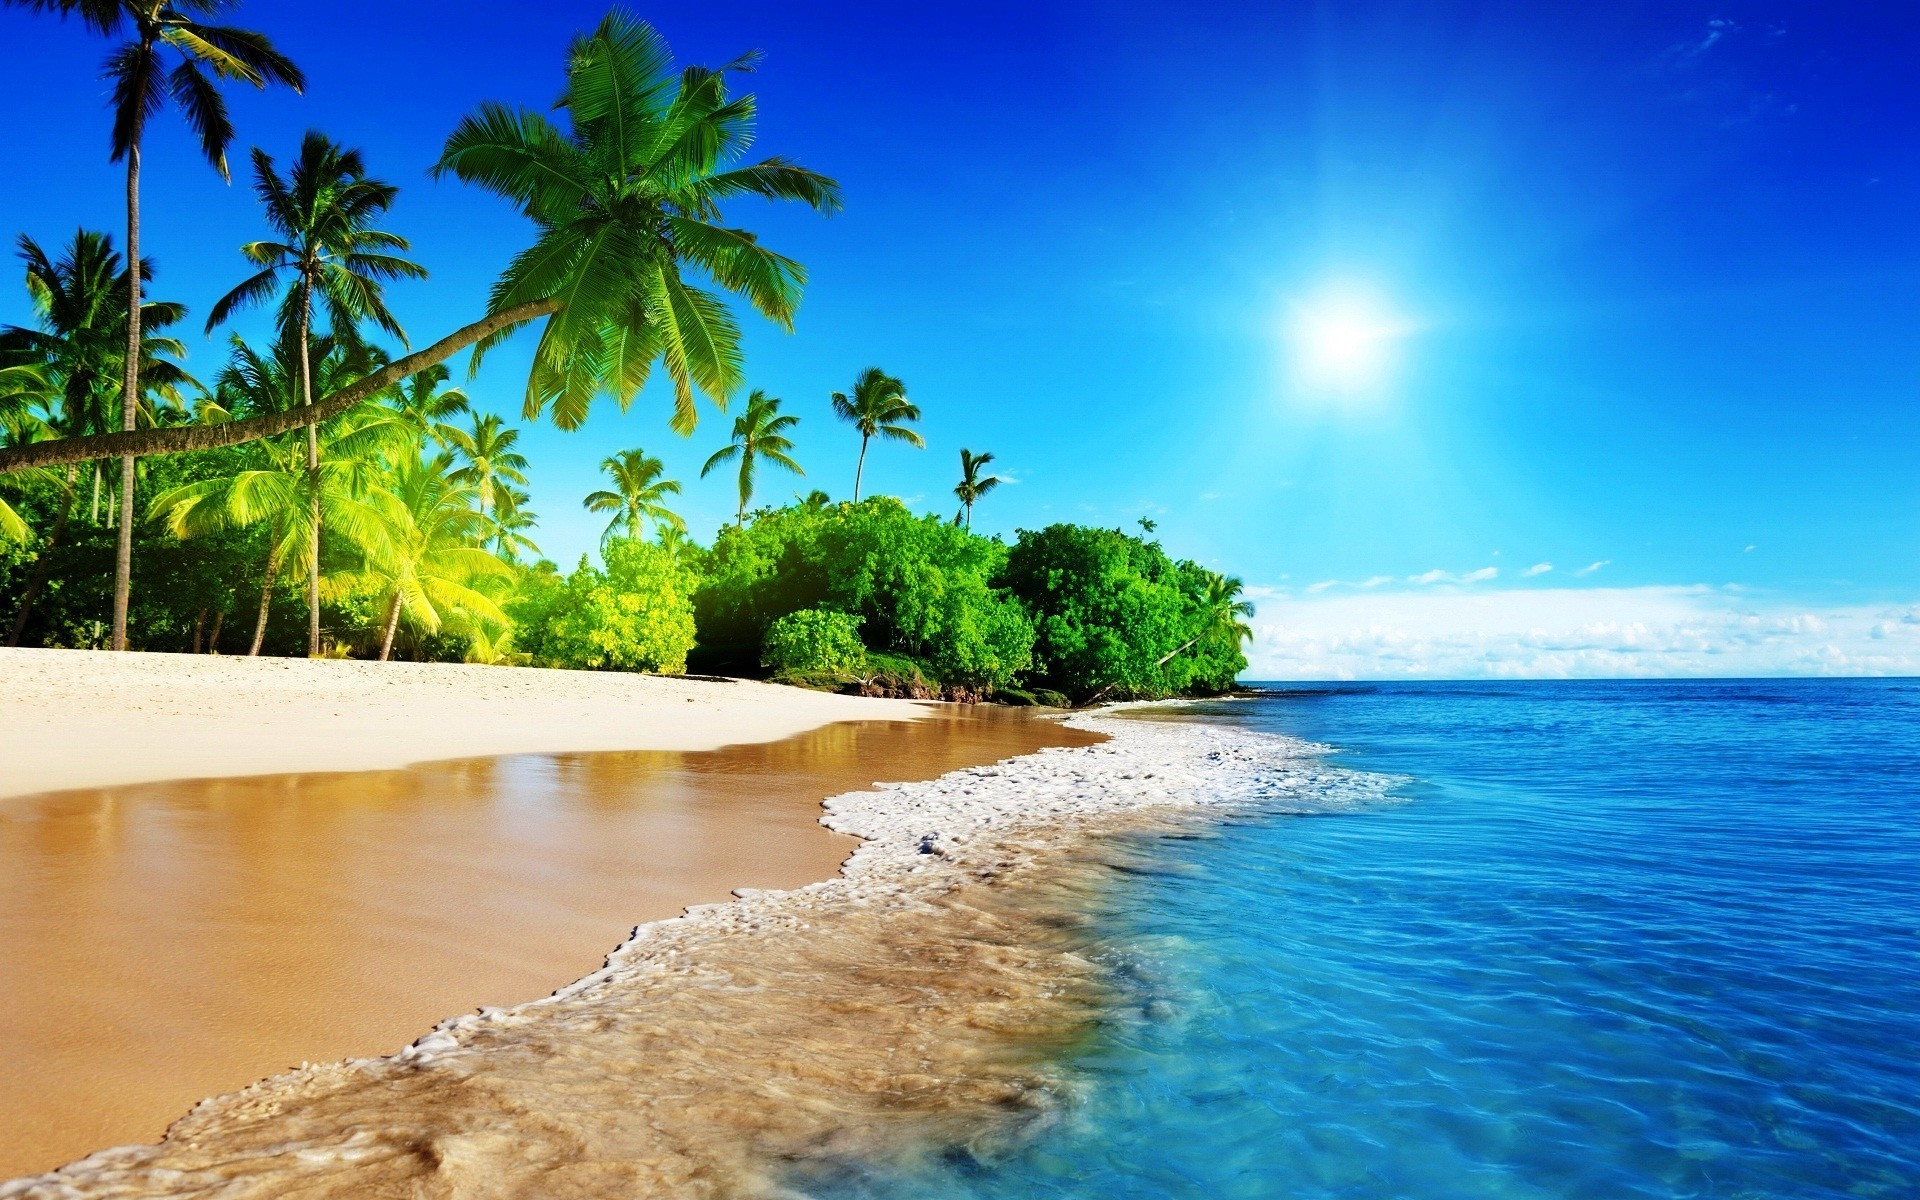 Summer Wallpaper - KoLPaPer - Awesome Free HD Wallpapers